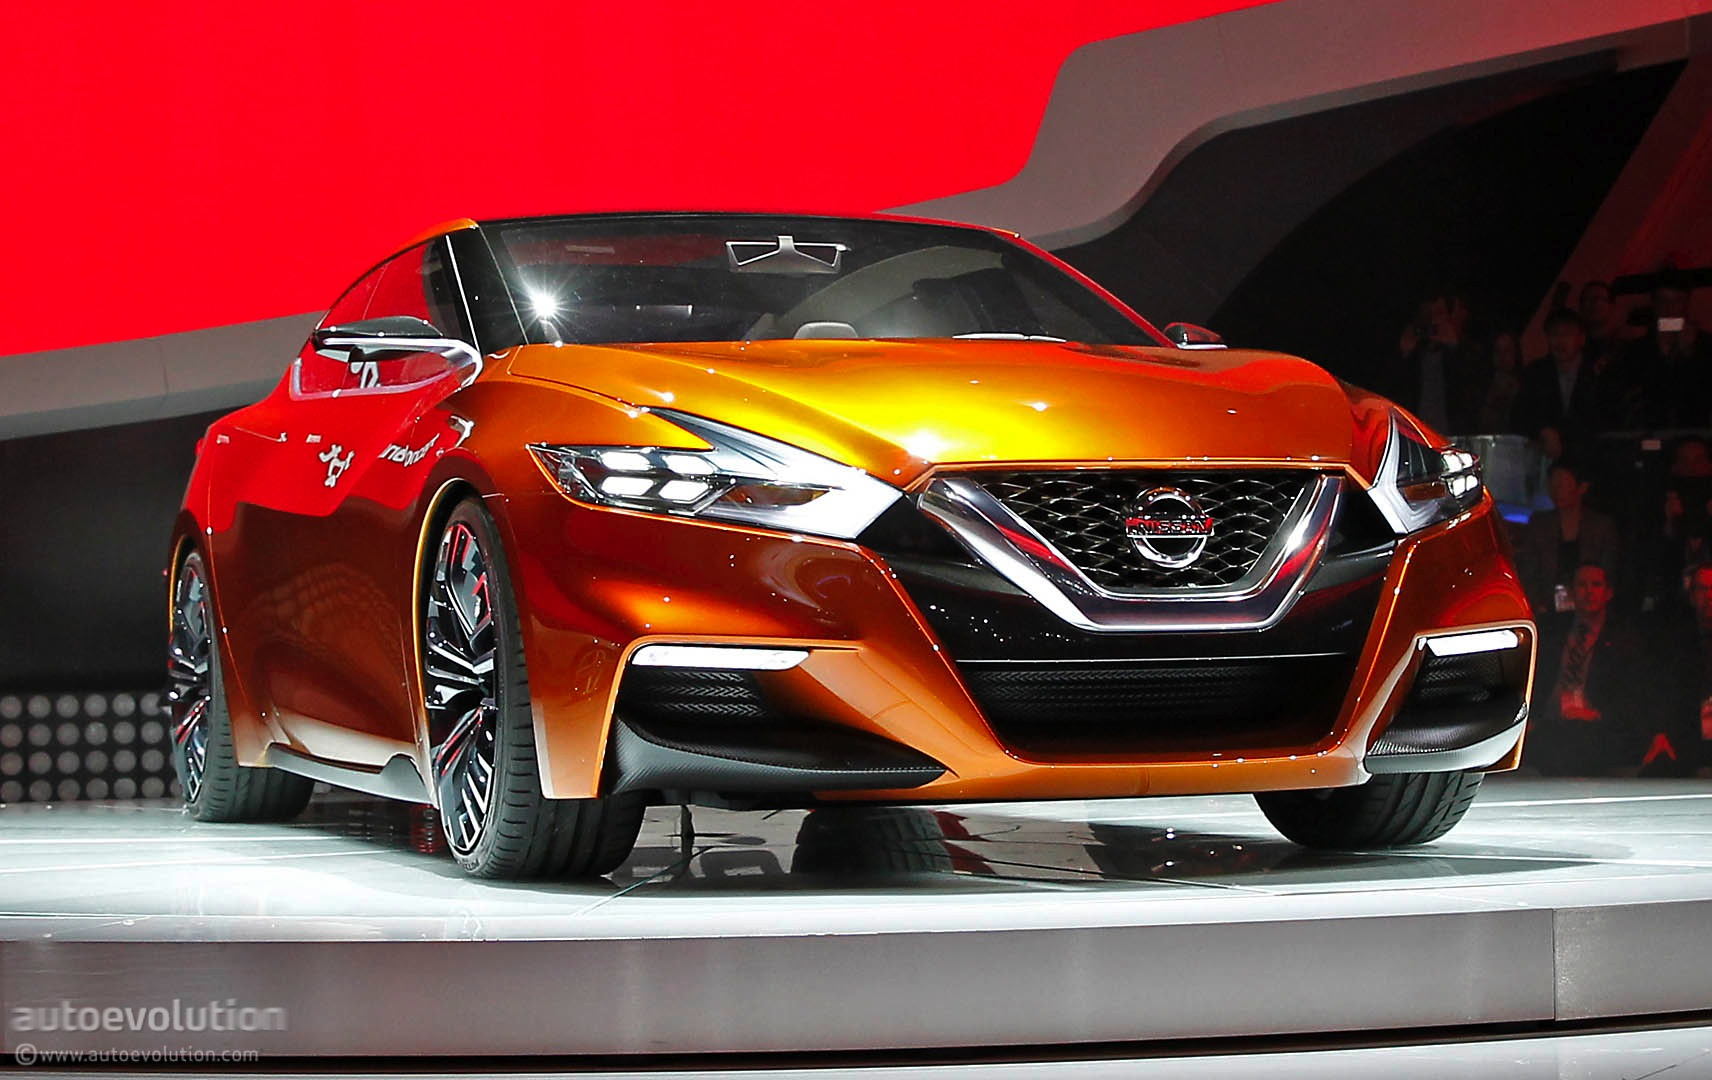 Mustang Concept >> Nissan Sport Sedan Concept Previews the 2016 Maxima [Live Photos] - autoevolution